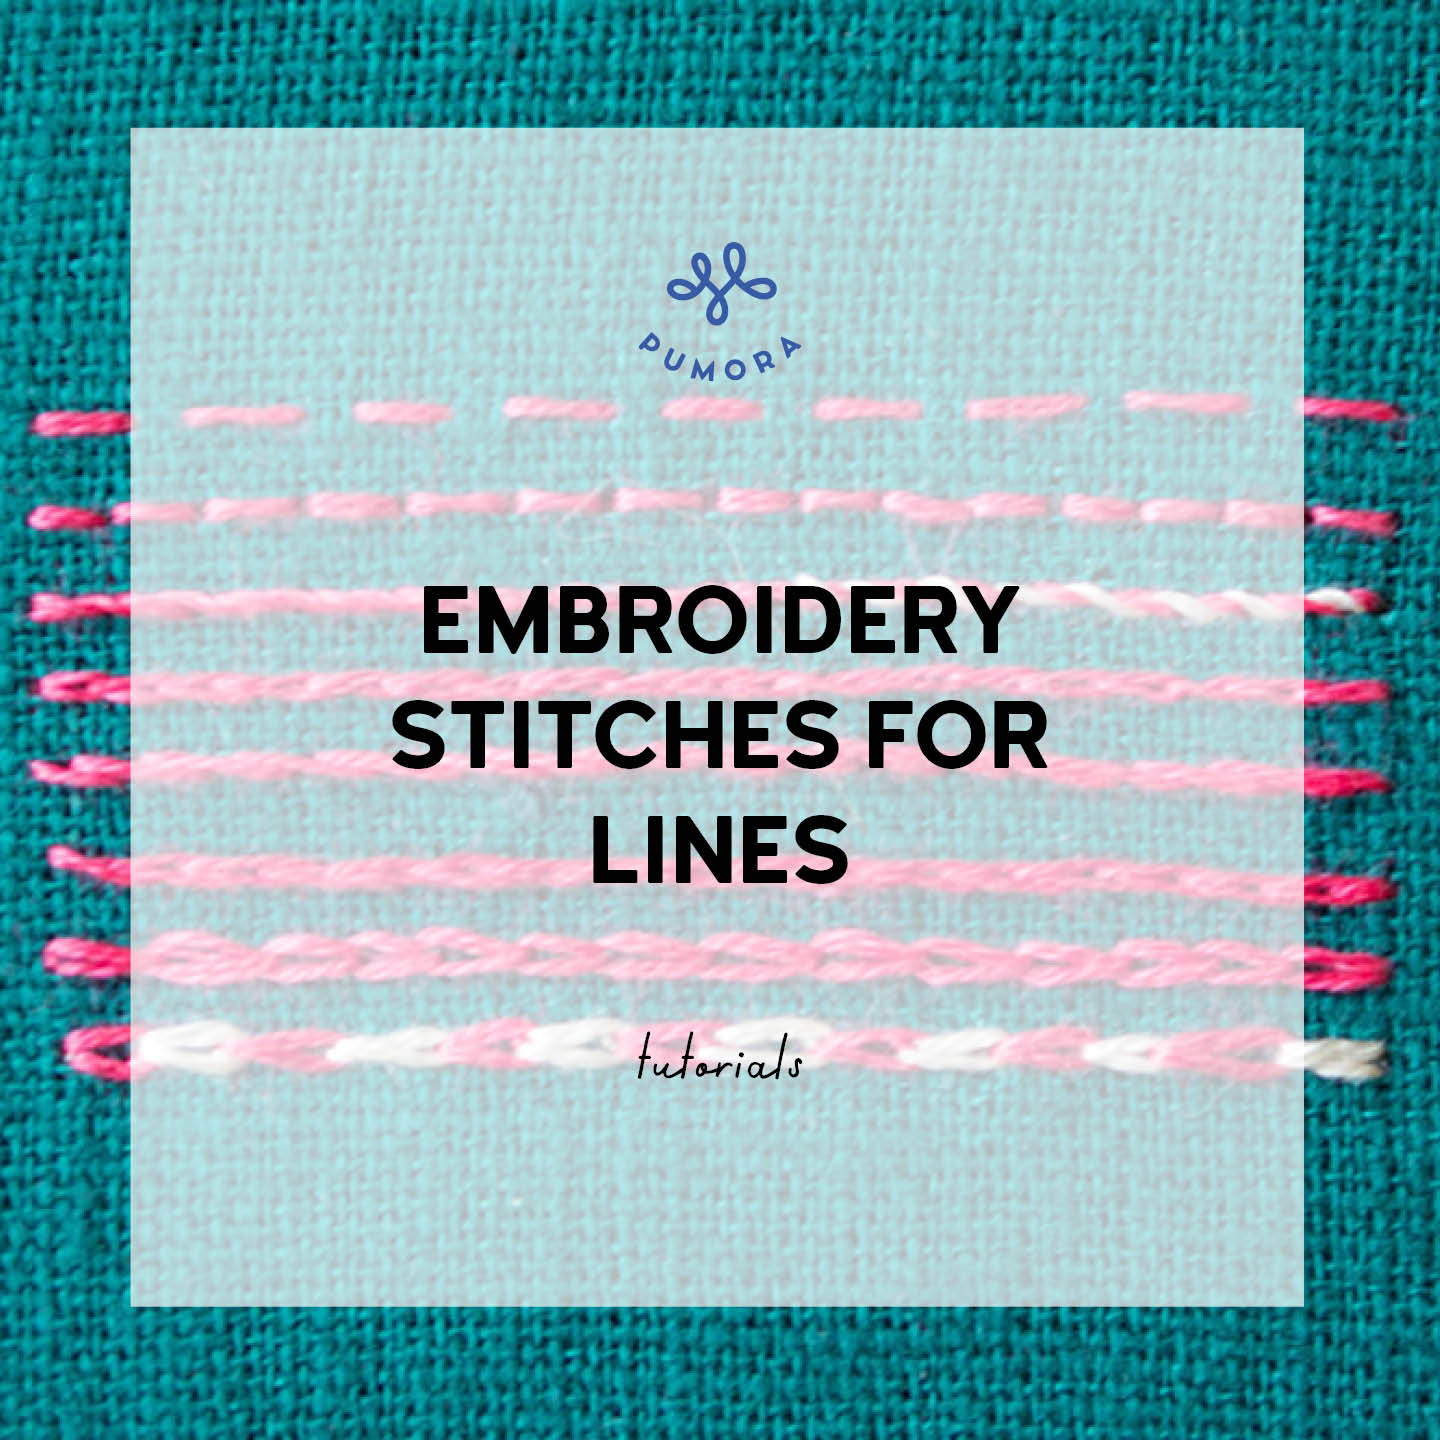 The Best Embroidery Stitches For Lines And Letters Pumora All About Hand Embroidery